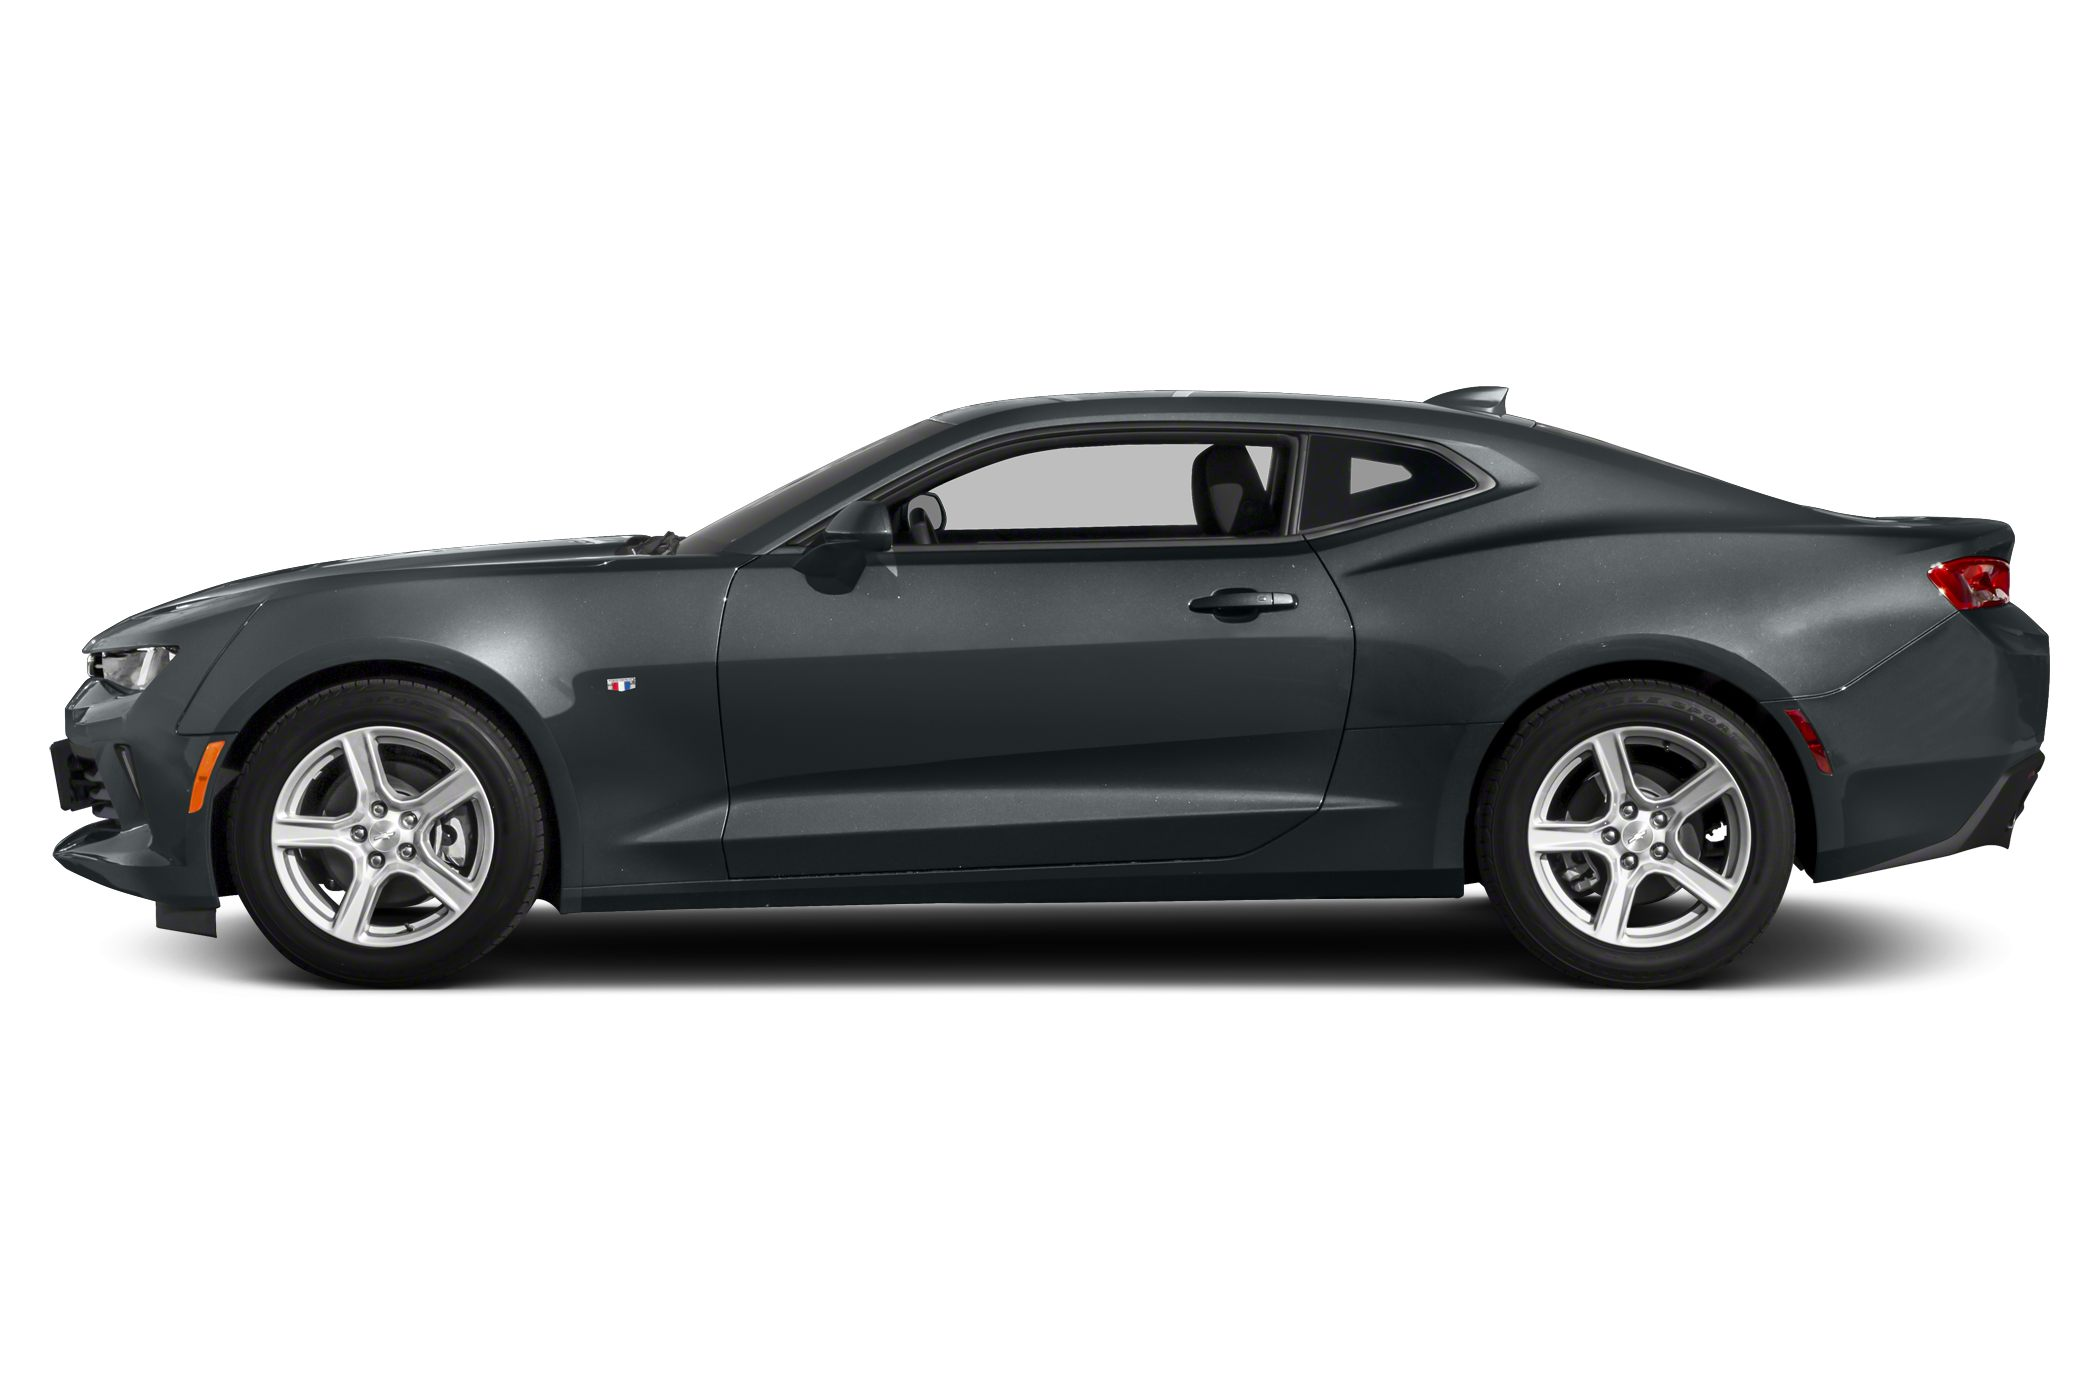 2018 Chevrolet Camaro Deals, Prices, Incentives & Leases ...